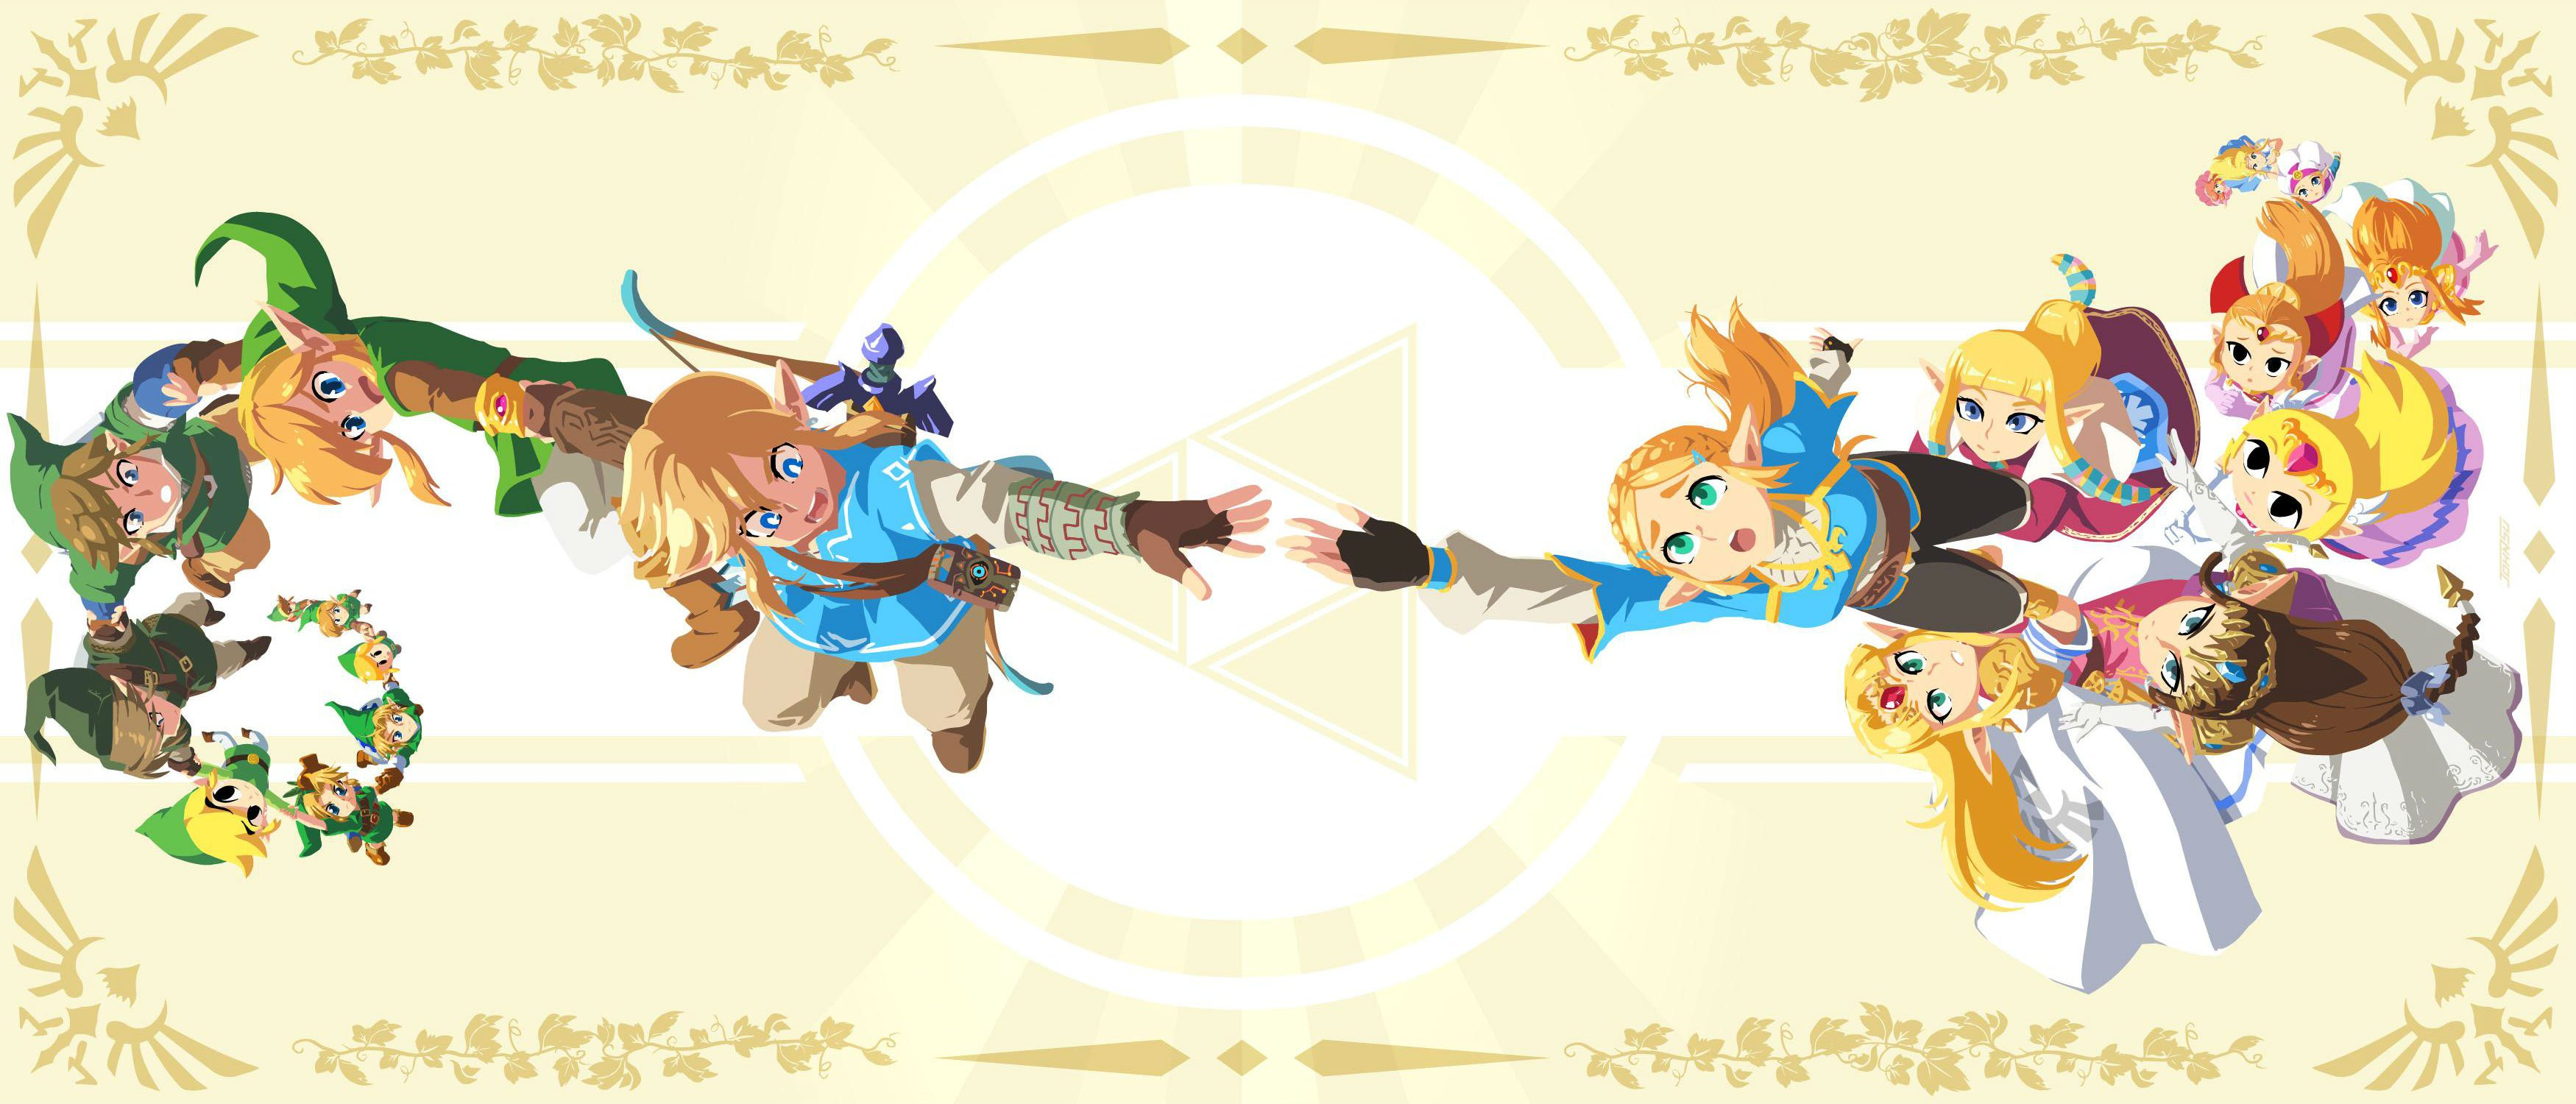 This Legend of Zelda art featuring generations of Link and Zelda is stunning screenshot